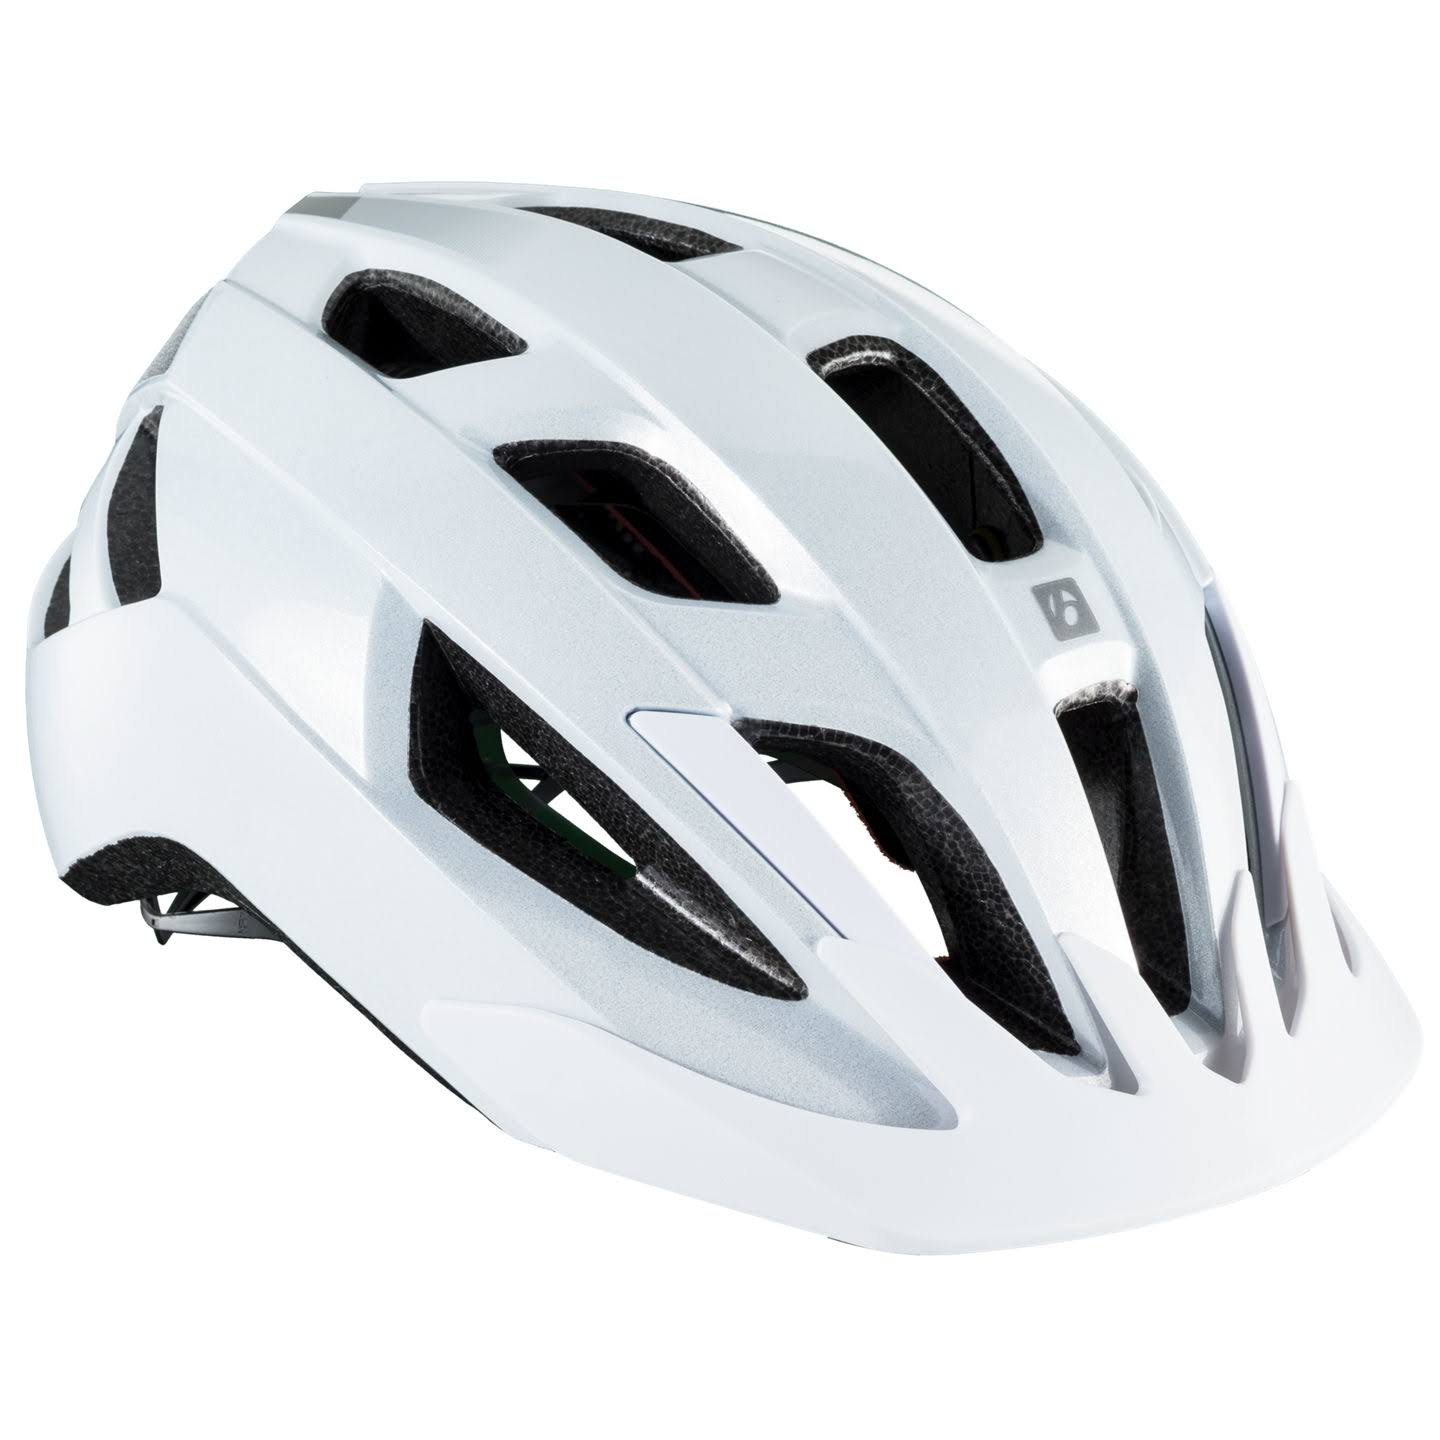 Bontrager Solstice MIPS Bike Helmet - White - Small/Medium